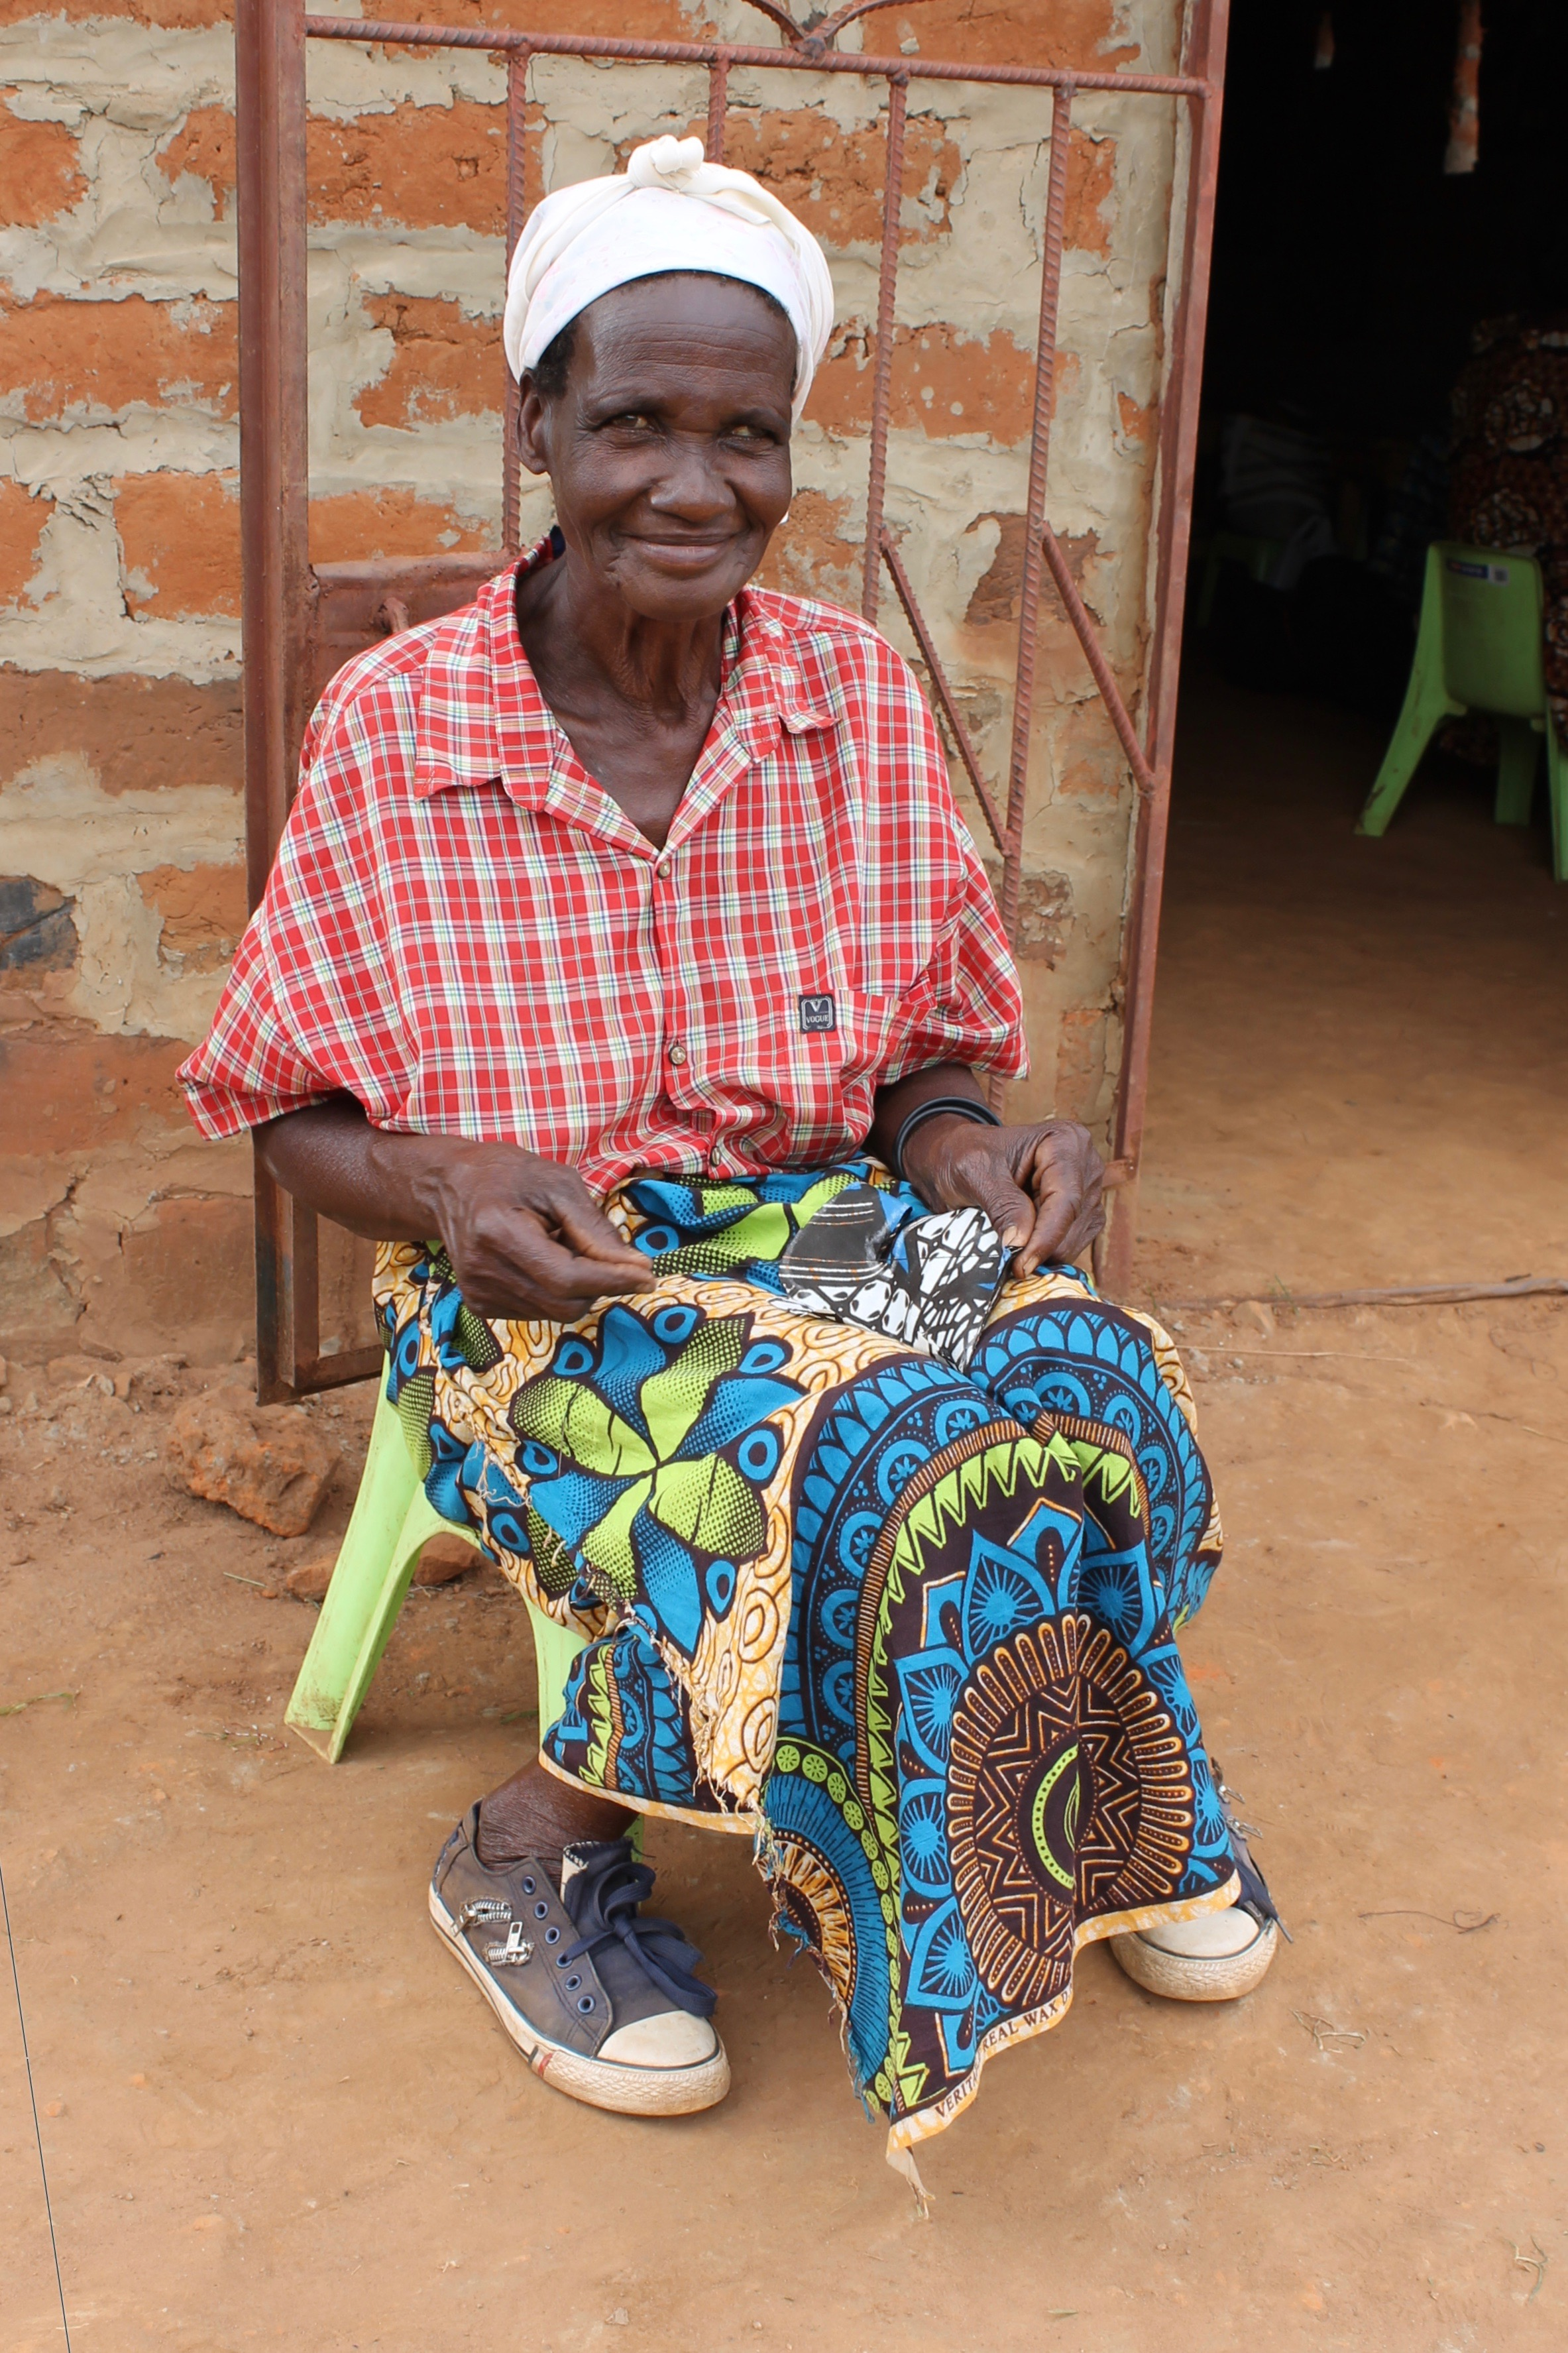 Meanwhile, Elizabeth Muchochoma, oldest woman in Muchochoma Village at 55 years old, hand-sewed some product samples outside.